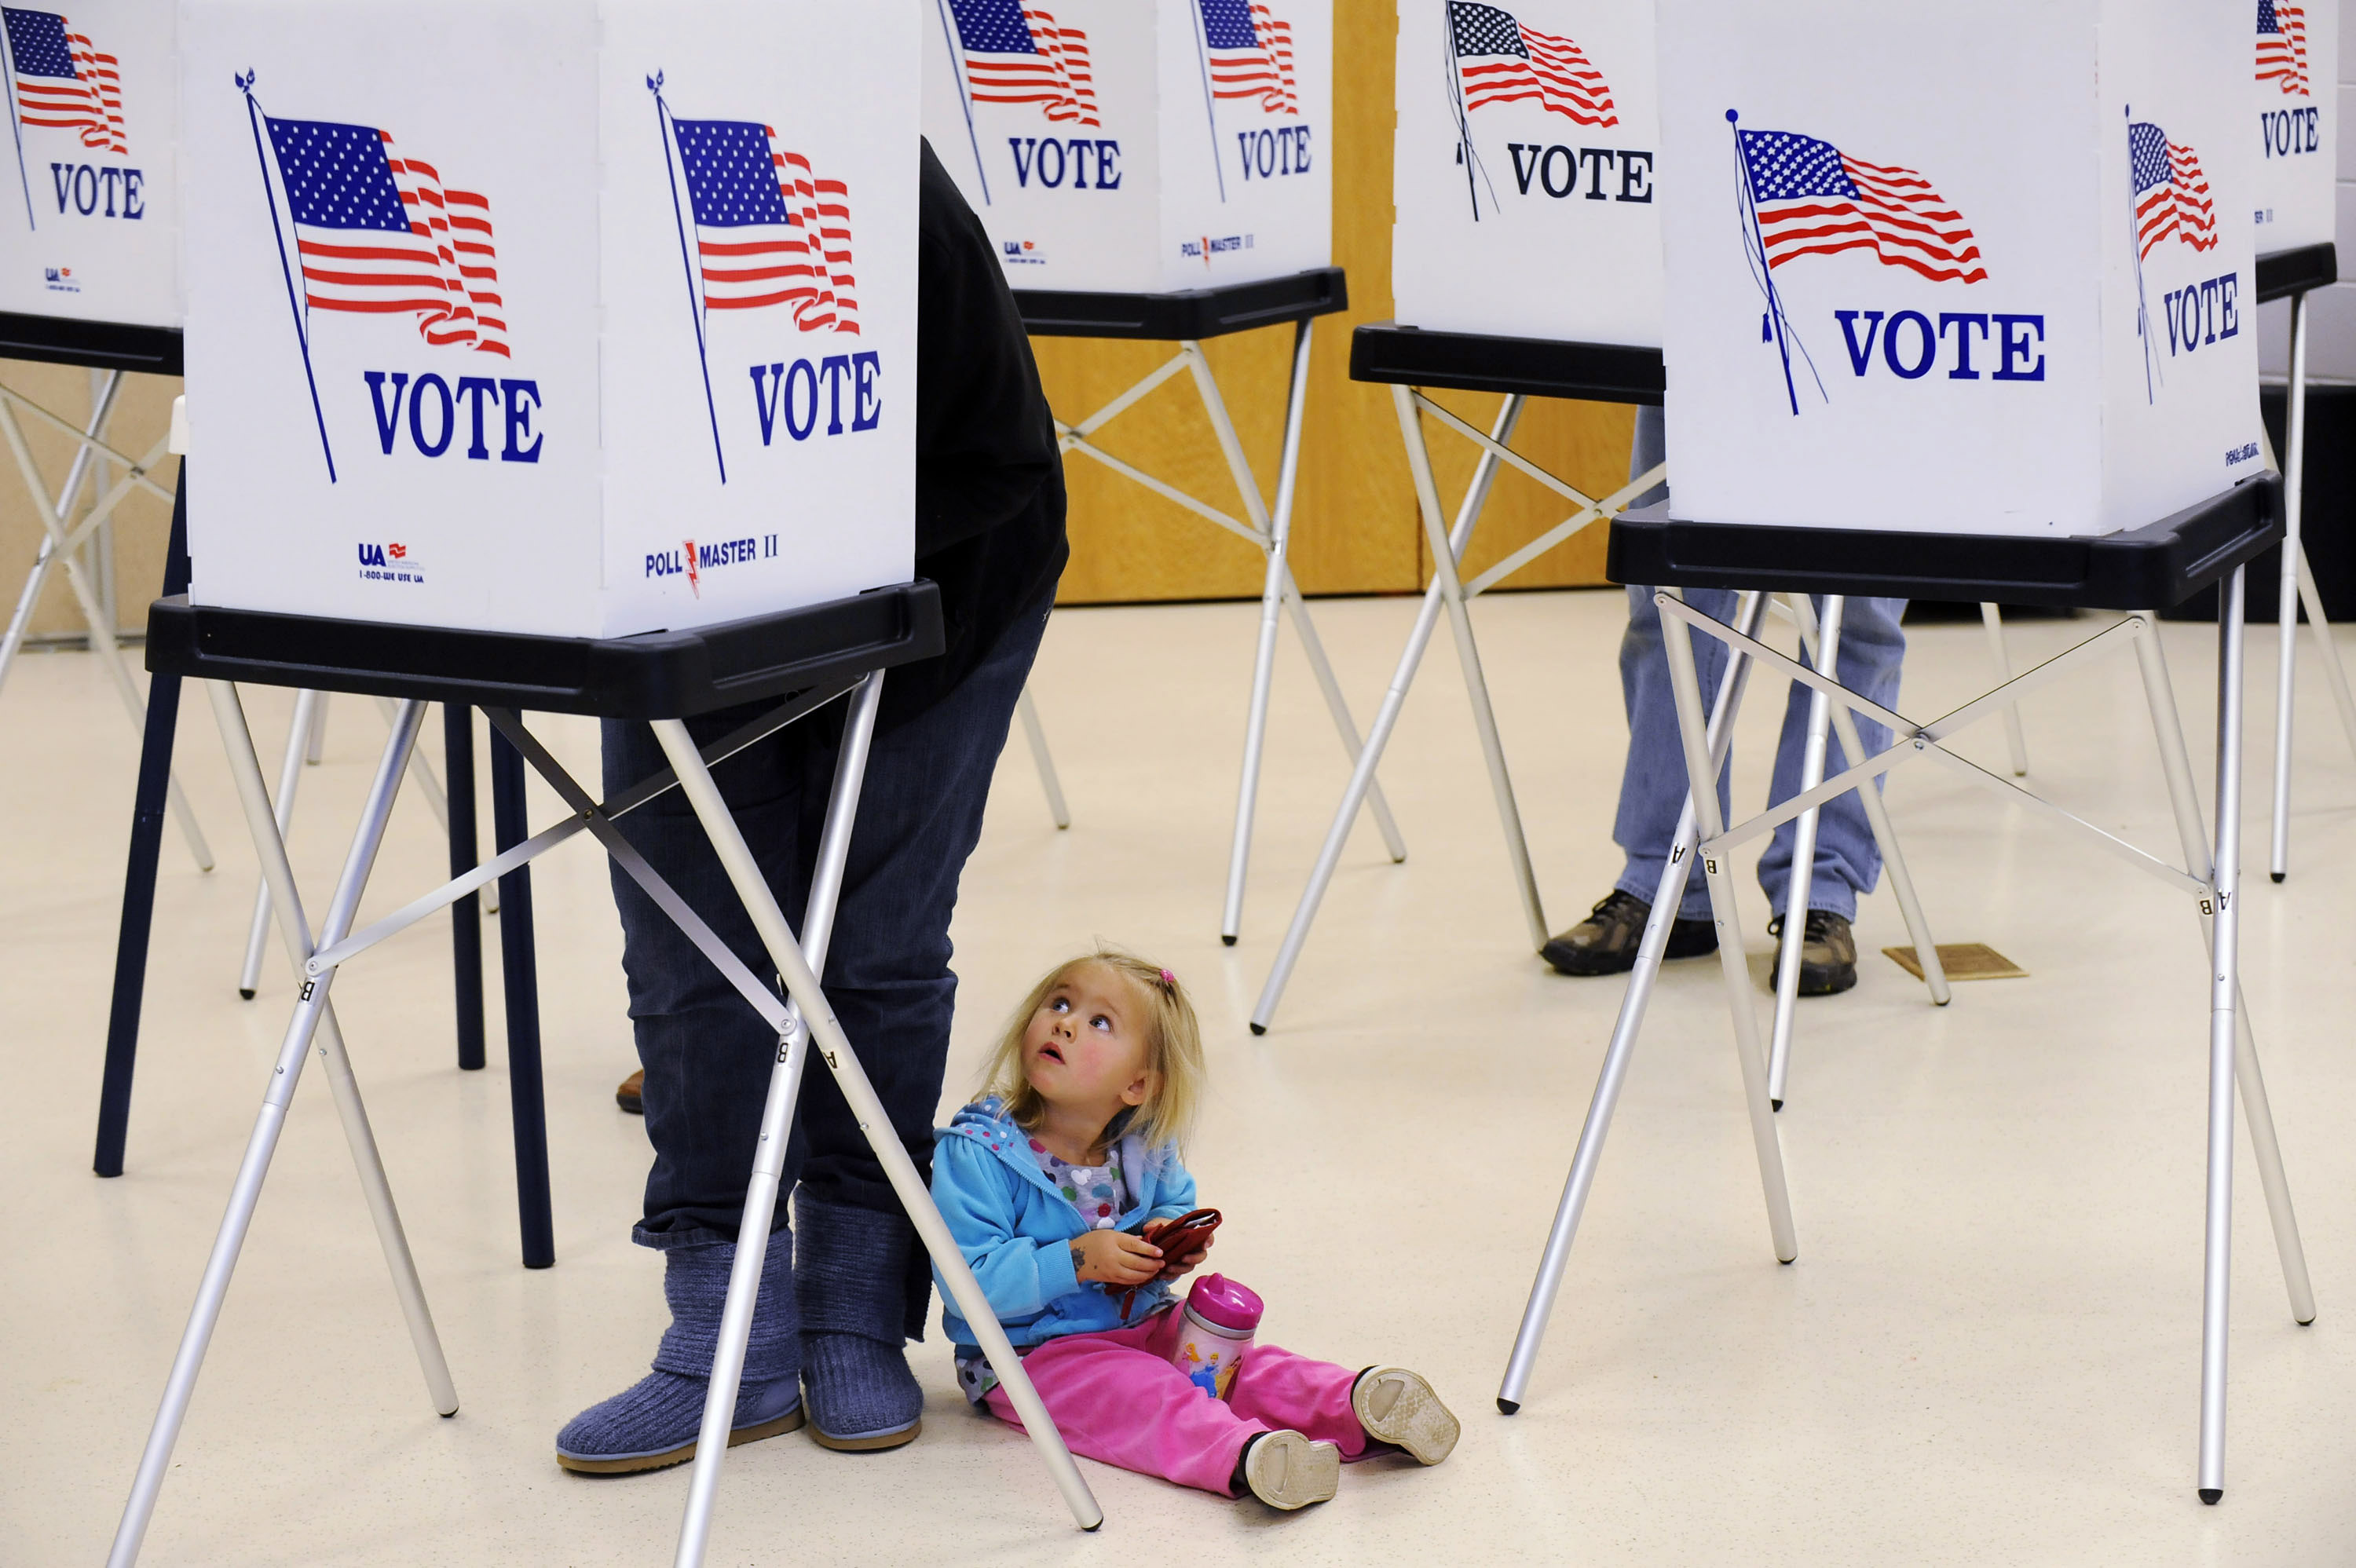 Coloradans Go The Polls In Midterm Electio